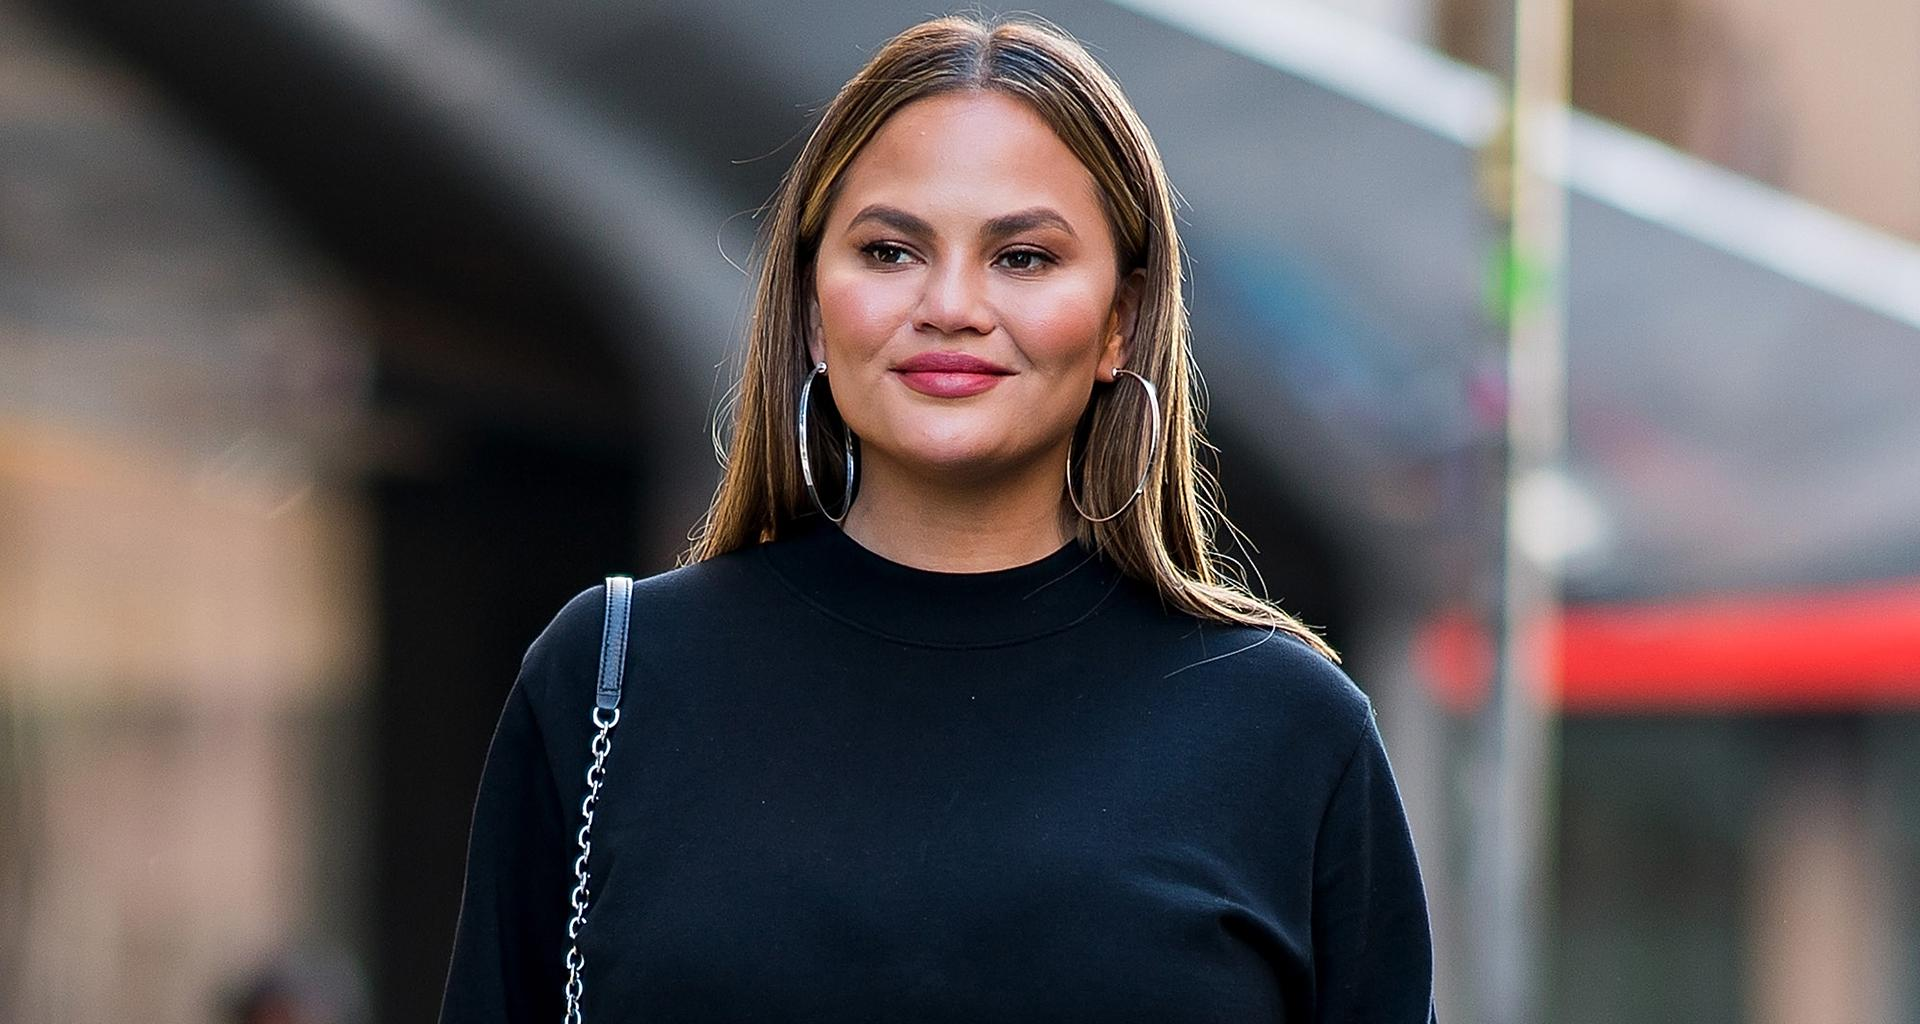 Chrissy Teigen Mom-Shamed For Not Covering Up Enough Around Daughter In New Pic - Check Out Her Response!